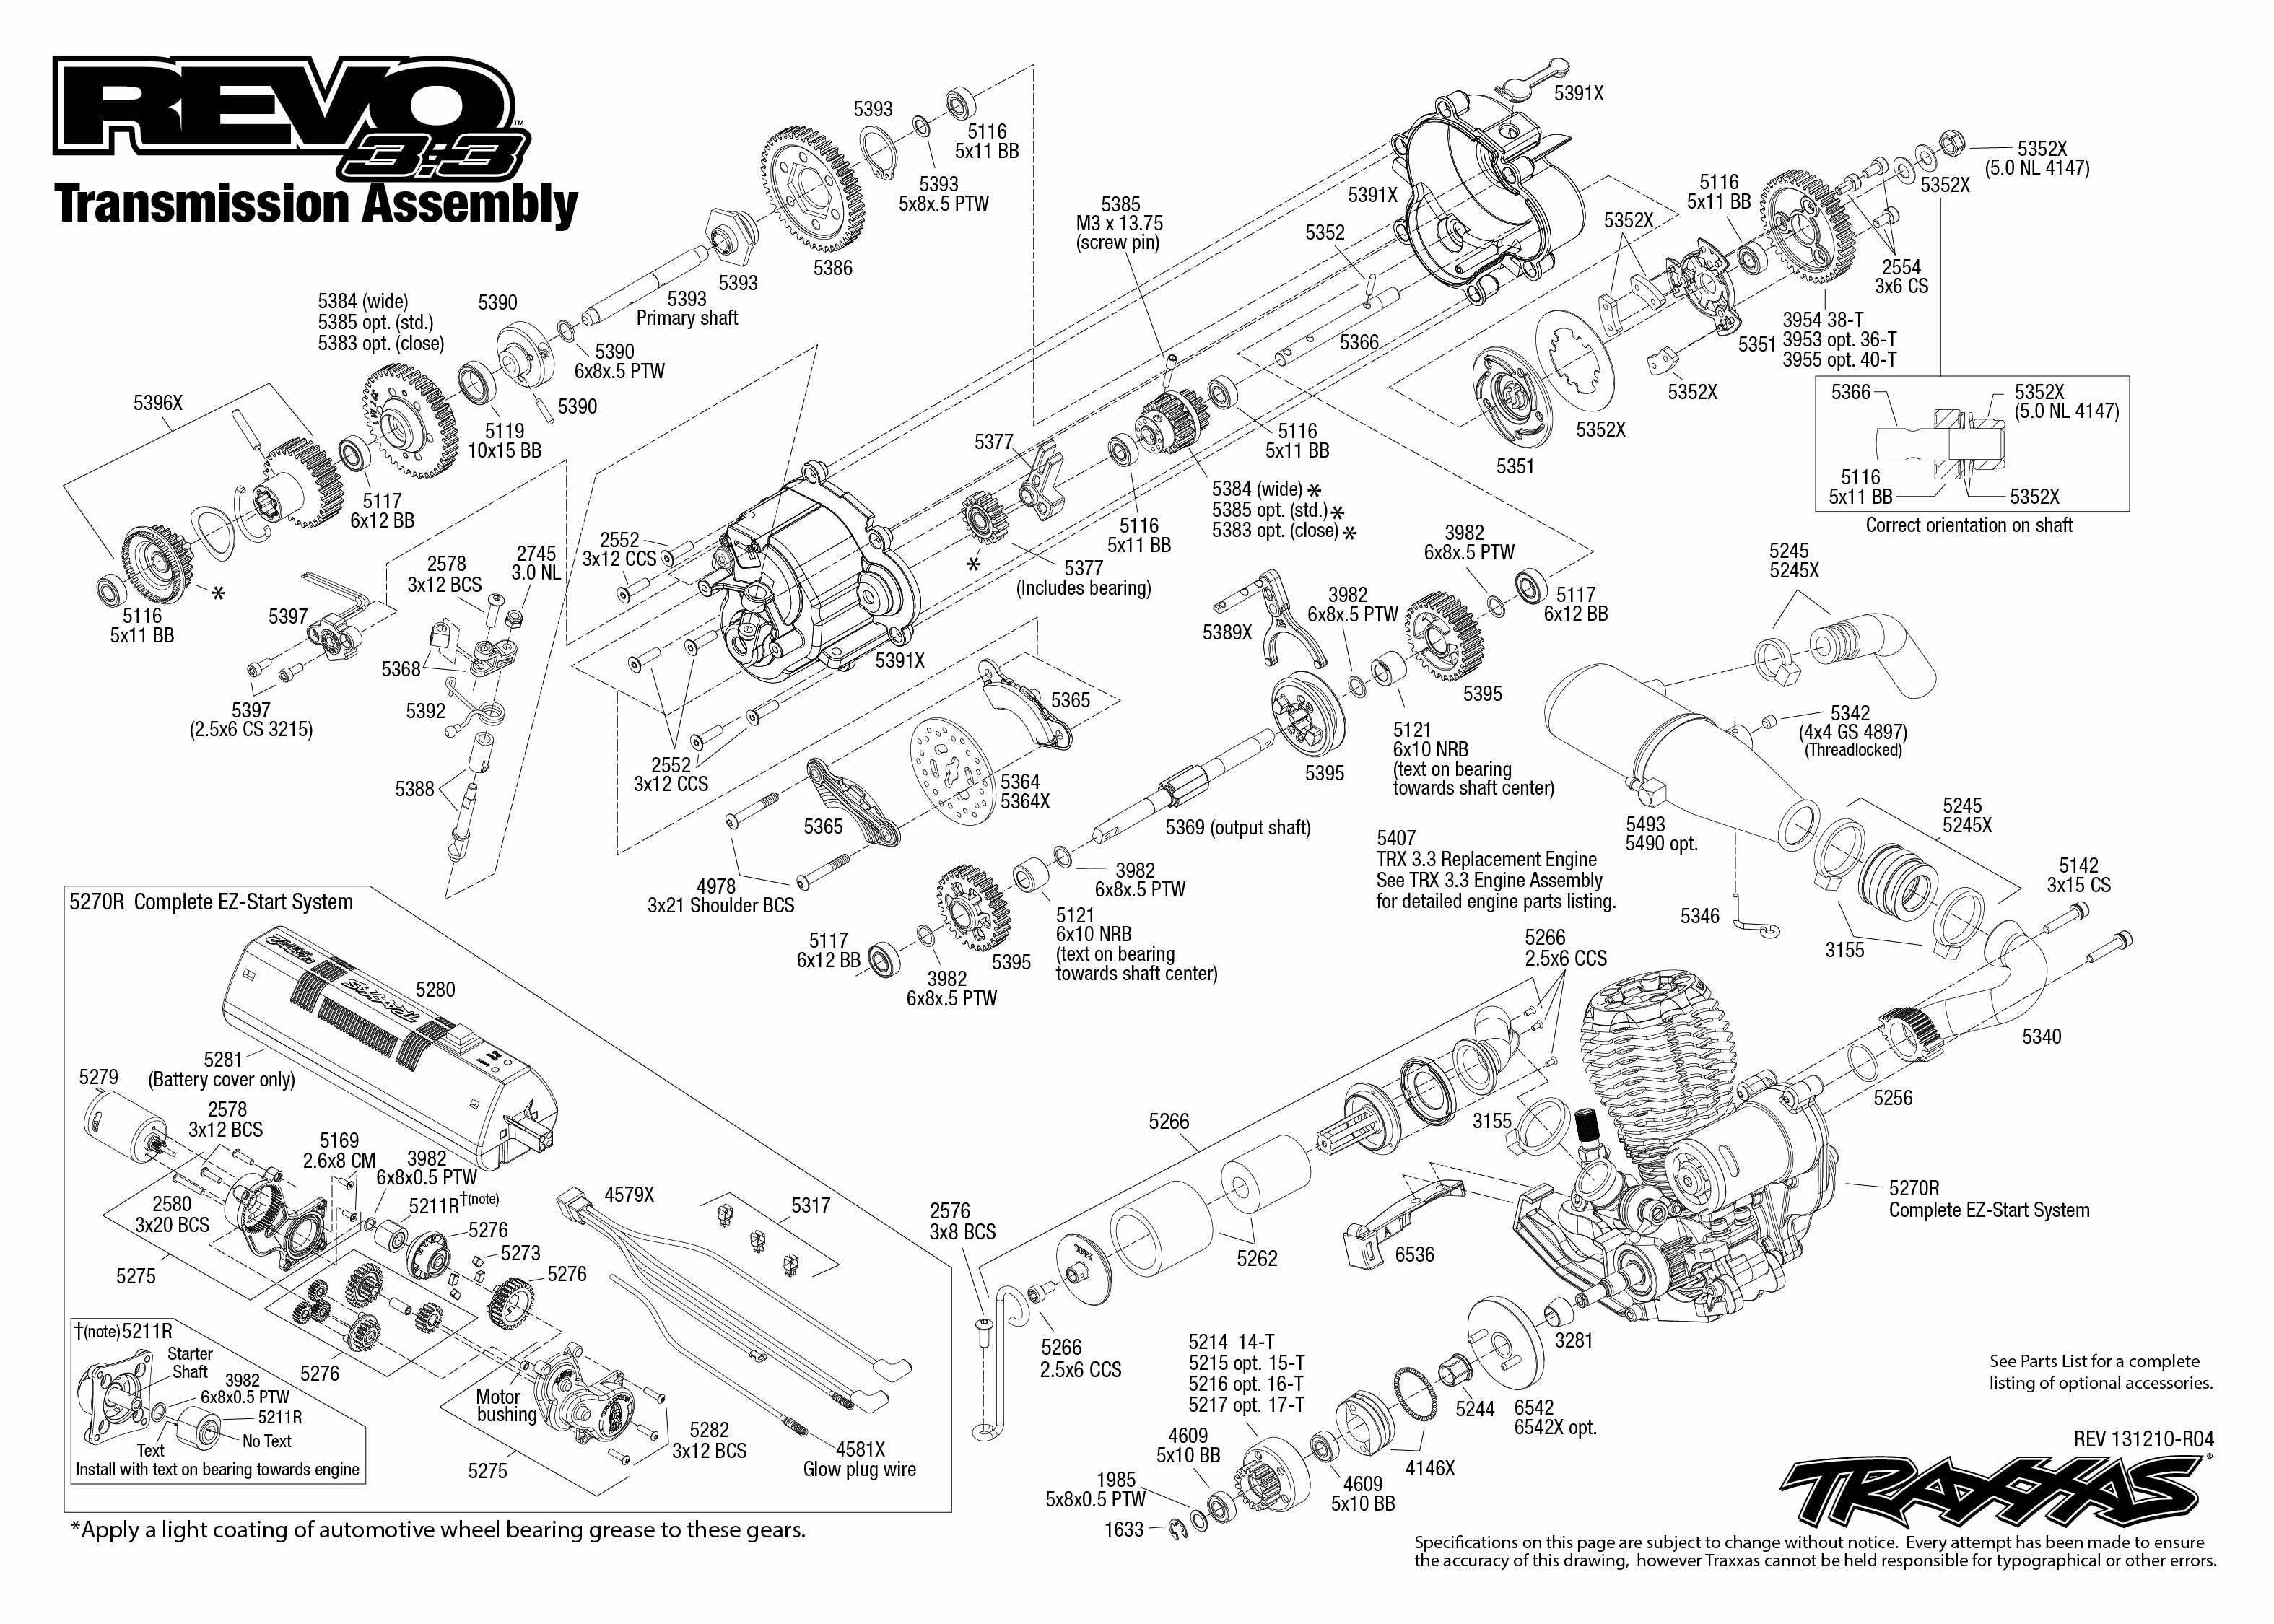 5309_Revo33 TQi exploded views 131210_5309 Transmission Assembly 5309 transmission exploded view (revo 3 3, w tqi 2 4ghz docking traxxas revo 3.3 wiring diagram at eliteediting.co